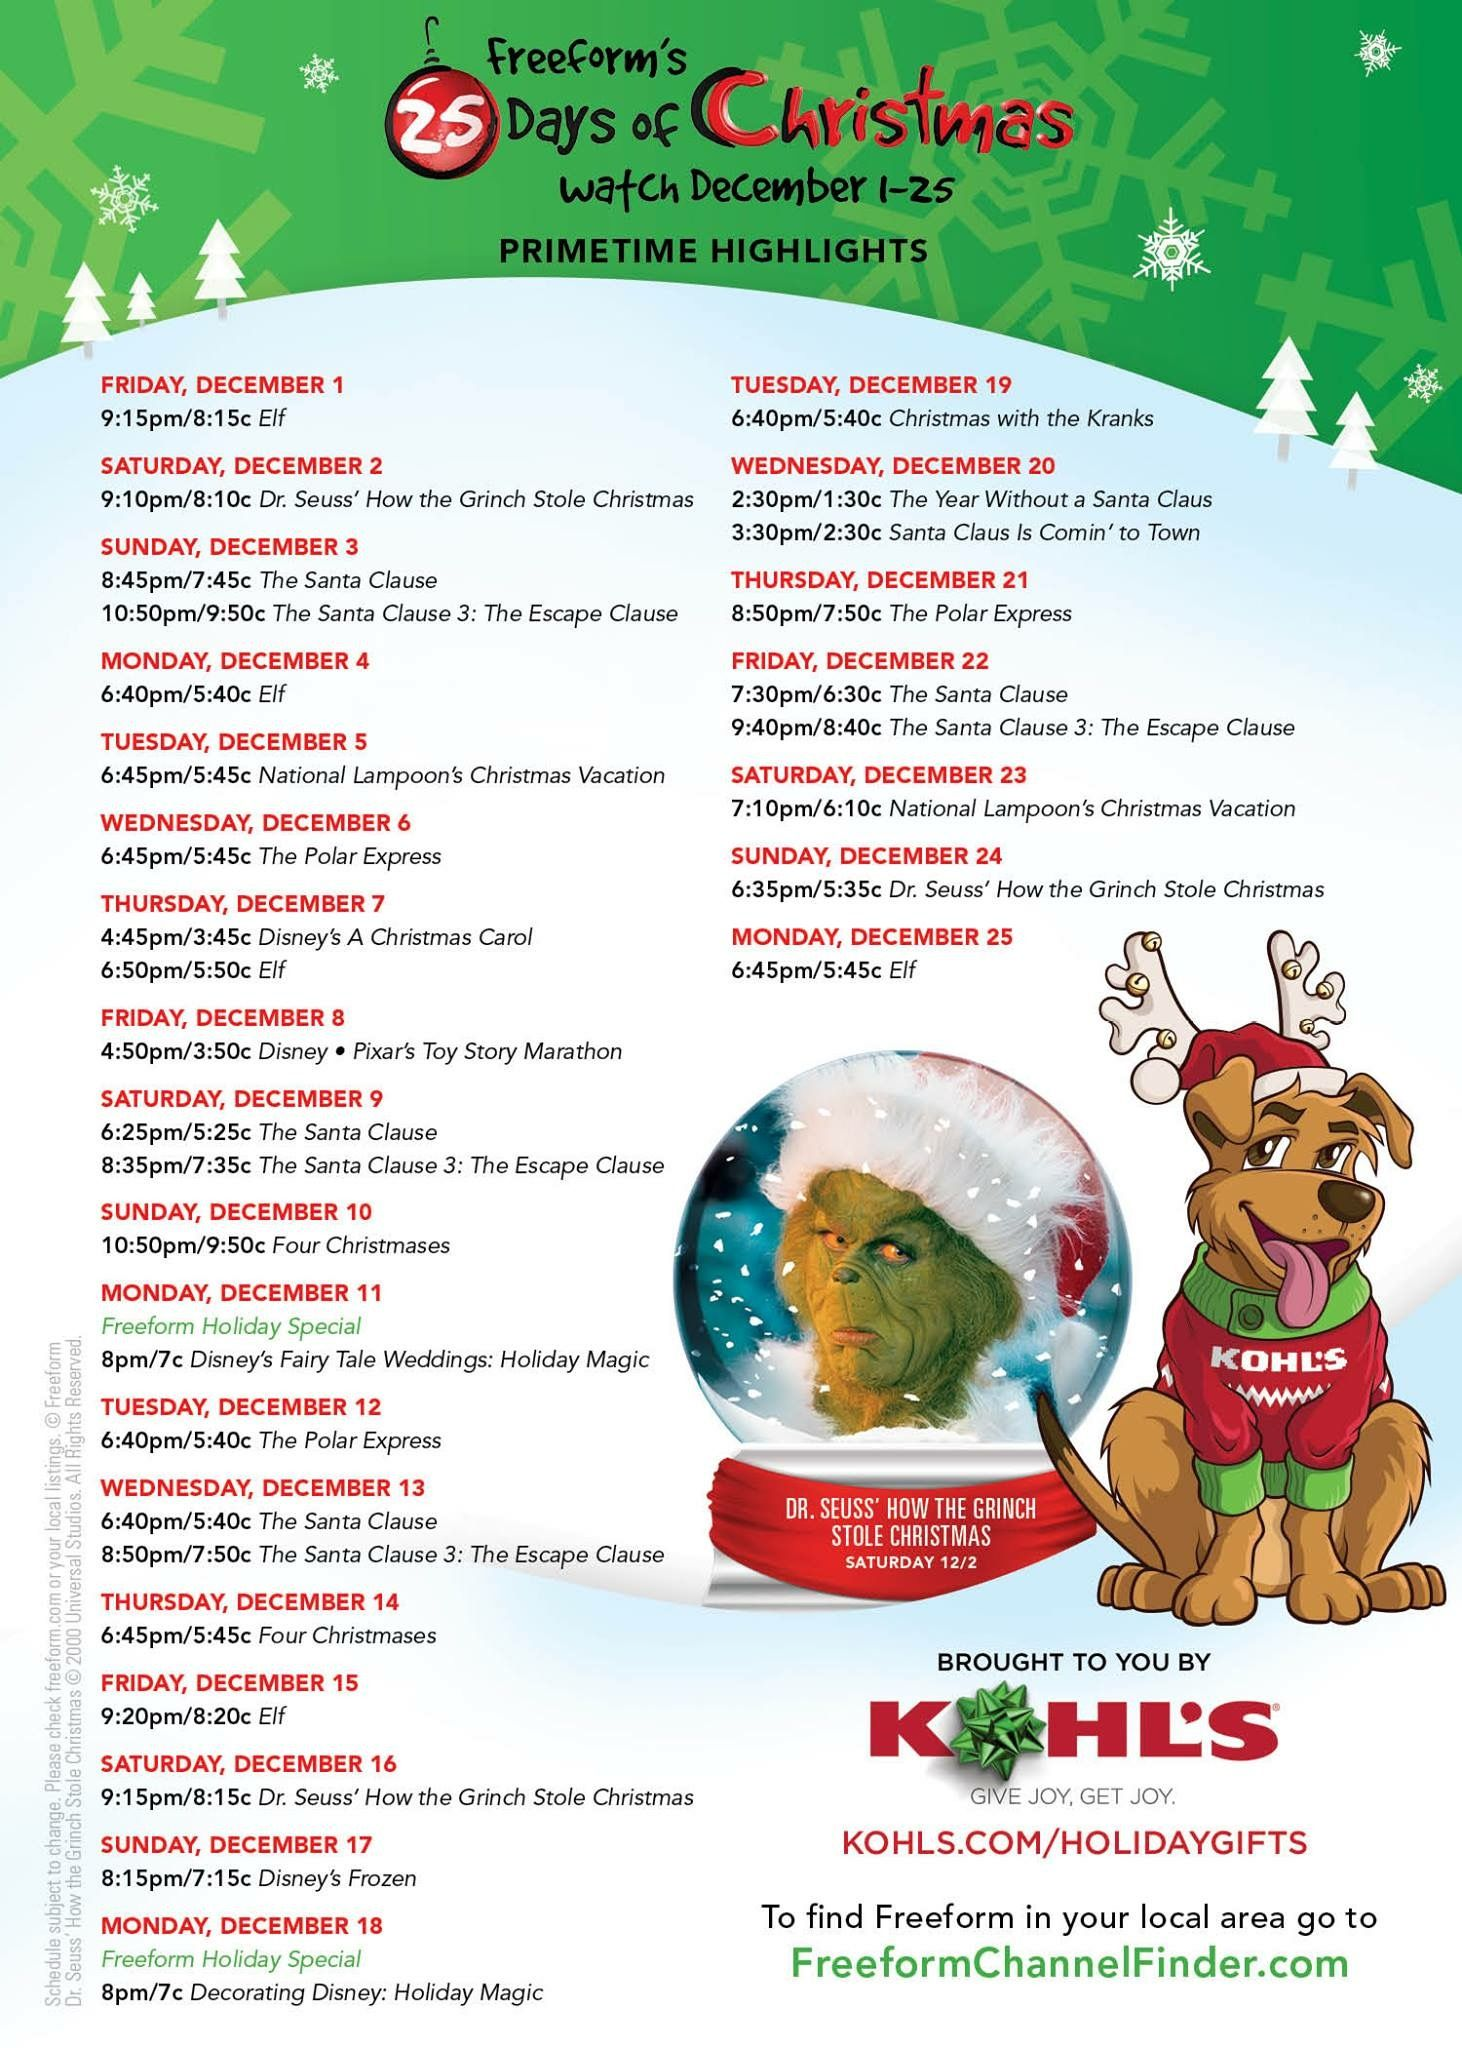 Freeform 25 Days Of Christmas 2020 Freeform's 25 days of Christmas | 25 days of christmas, Christmas